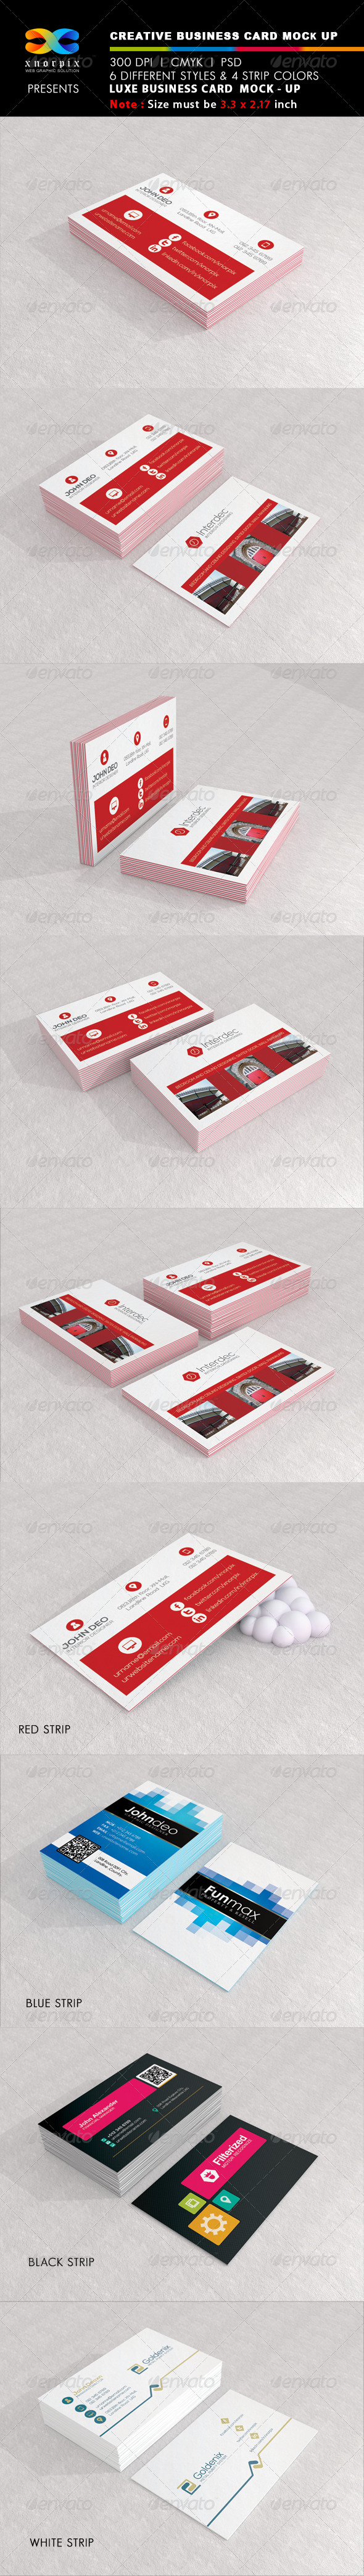 Moo Product Mockups From Graphicriver